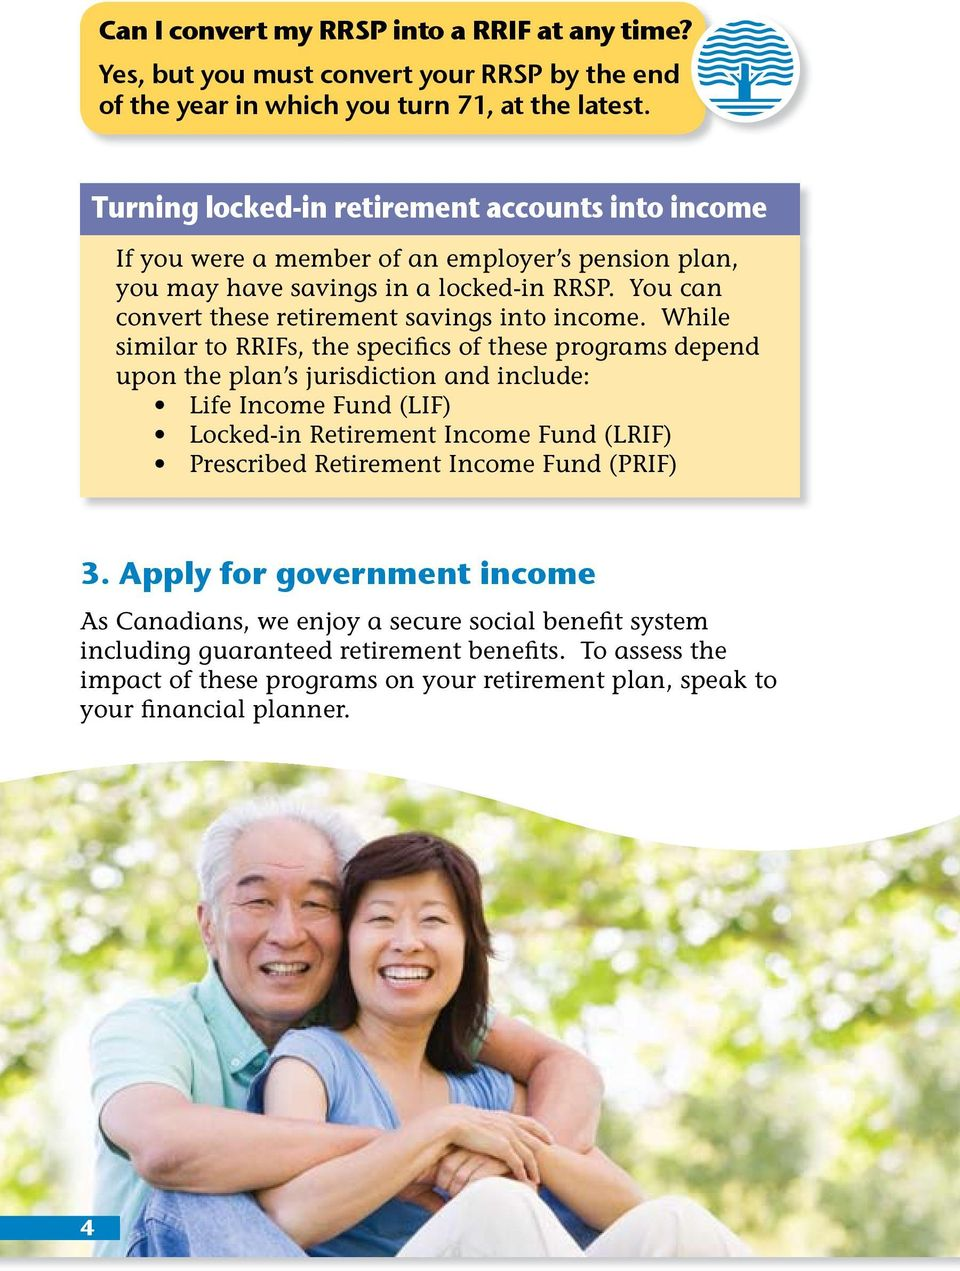 You can convert these retirement savings into income.